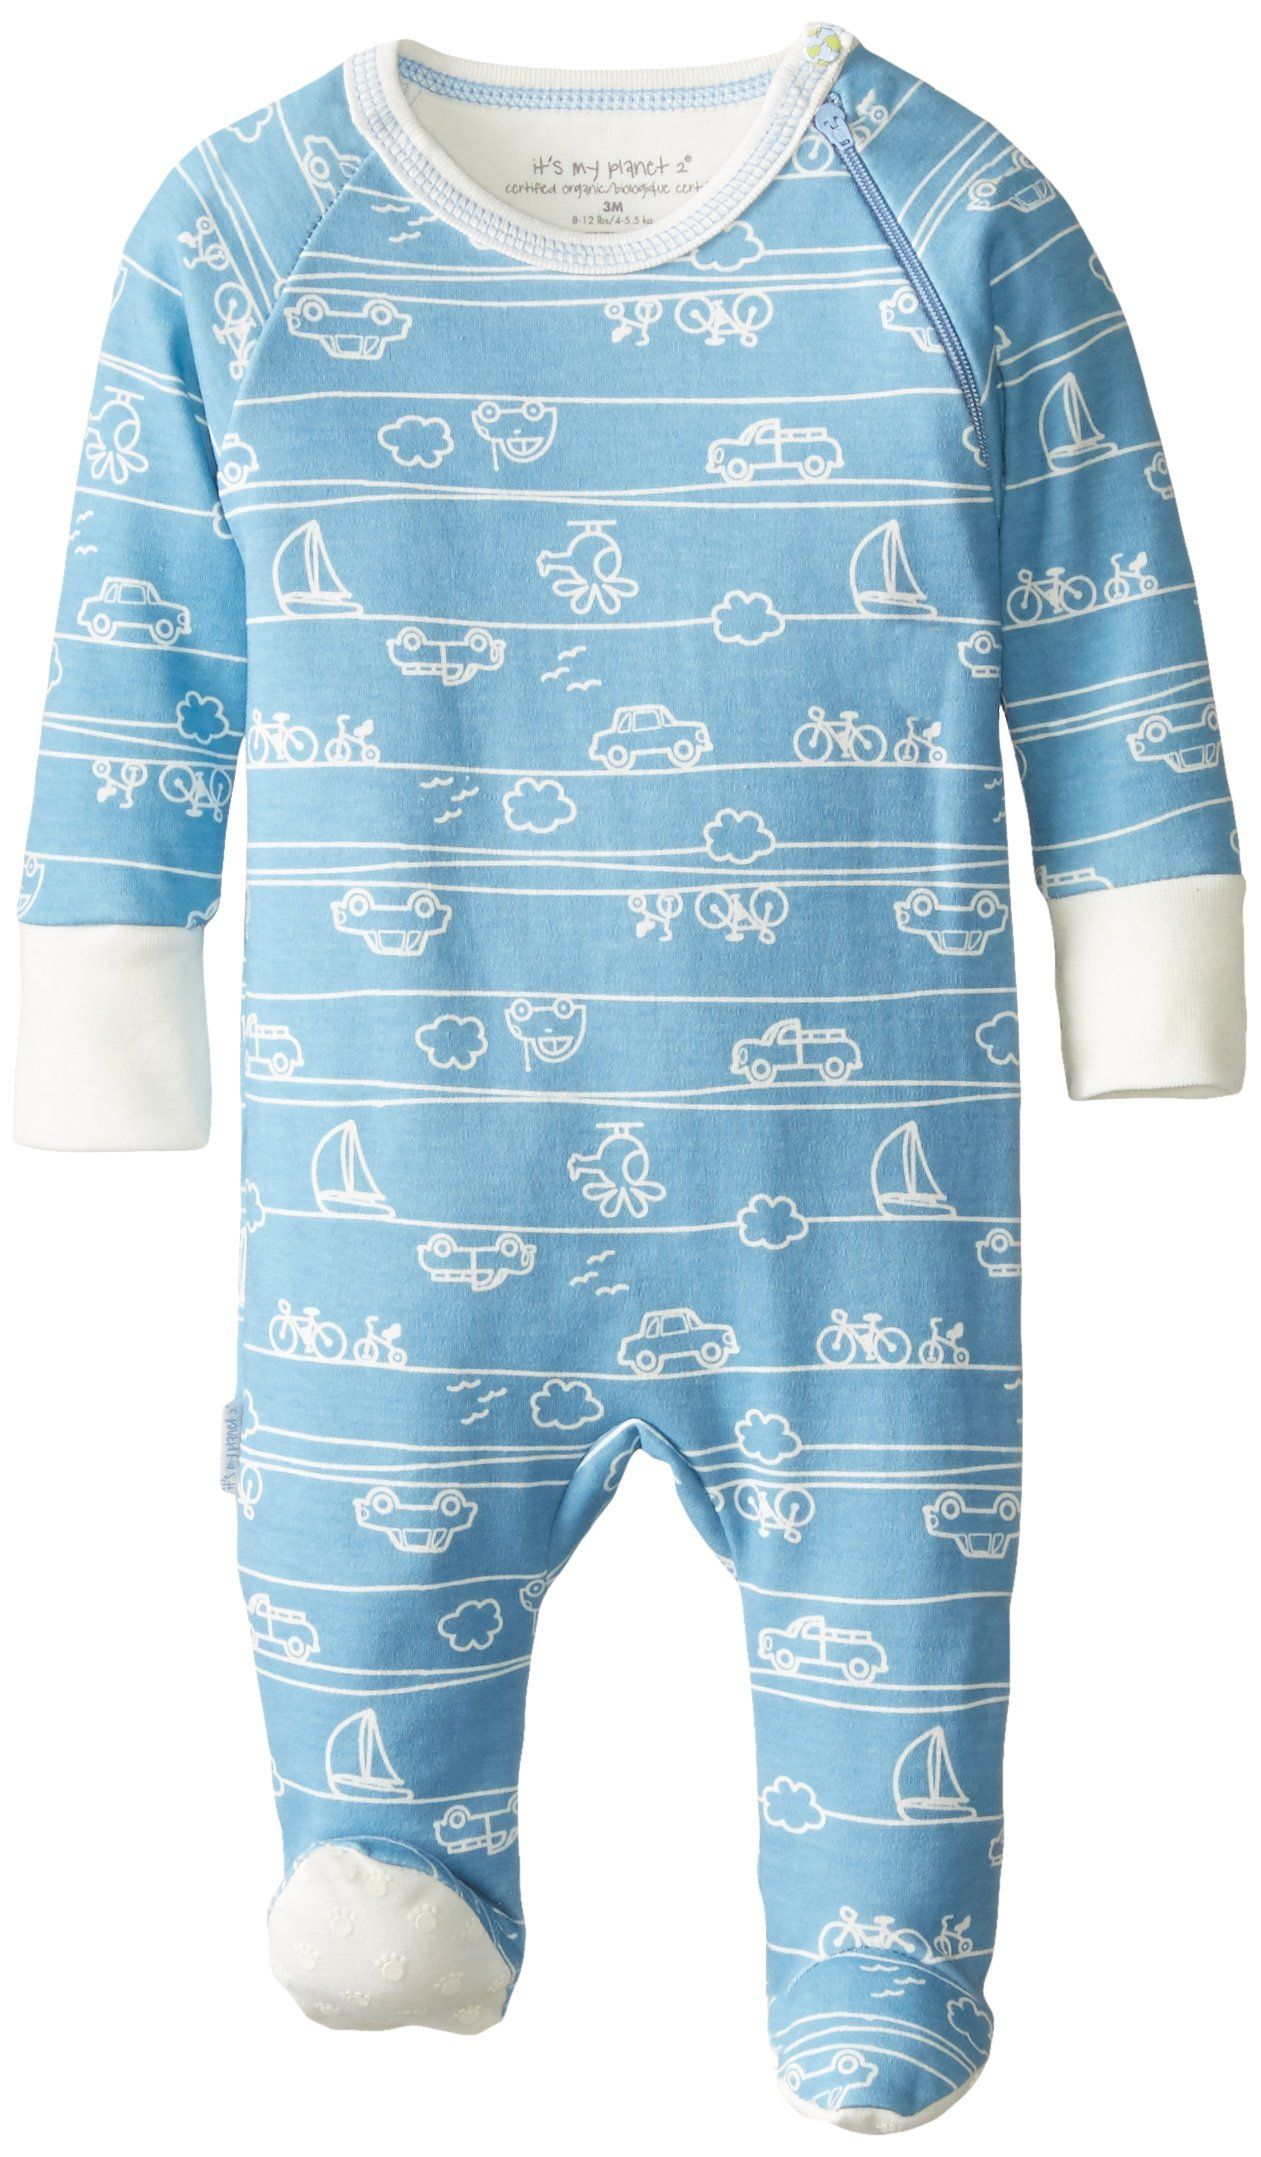 1 Month Kushies Baby Boys Front Snap Sleeper White Print